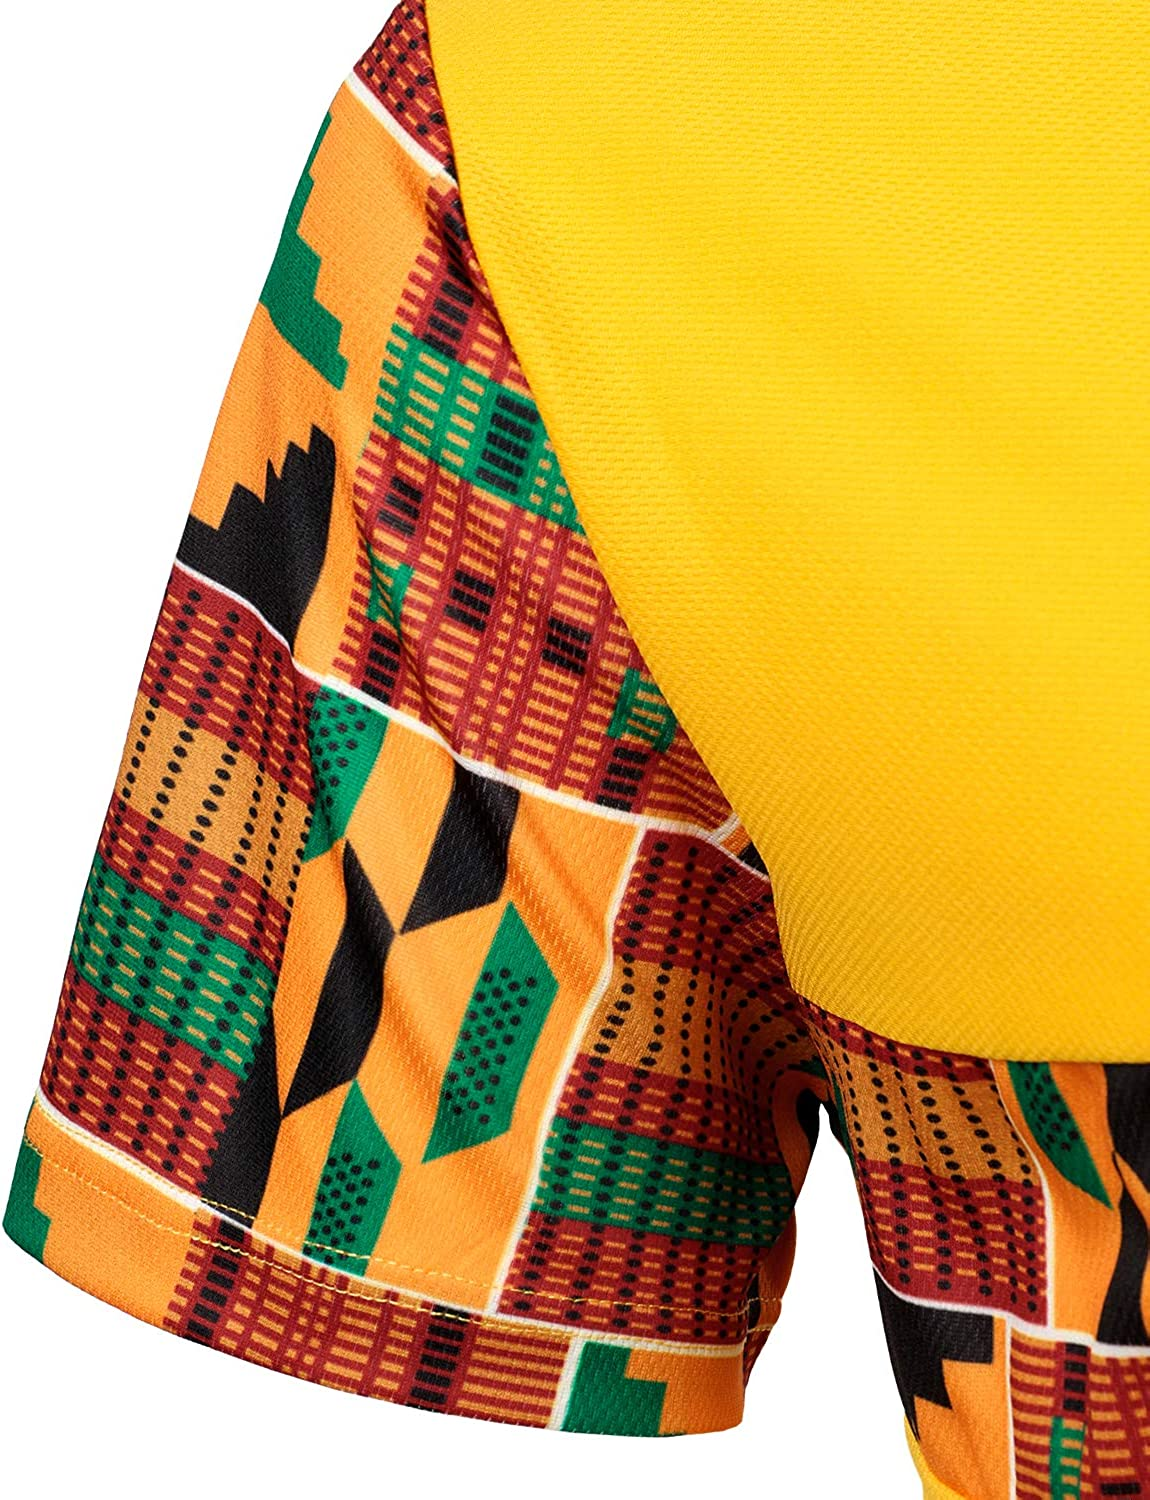 LucMatton Mens African Pattern Printed T-Shirt and Shorts Set Sports Mesh Tracksuit Dashiki Outfits